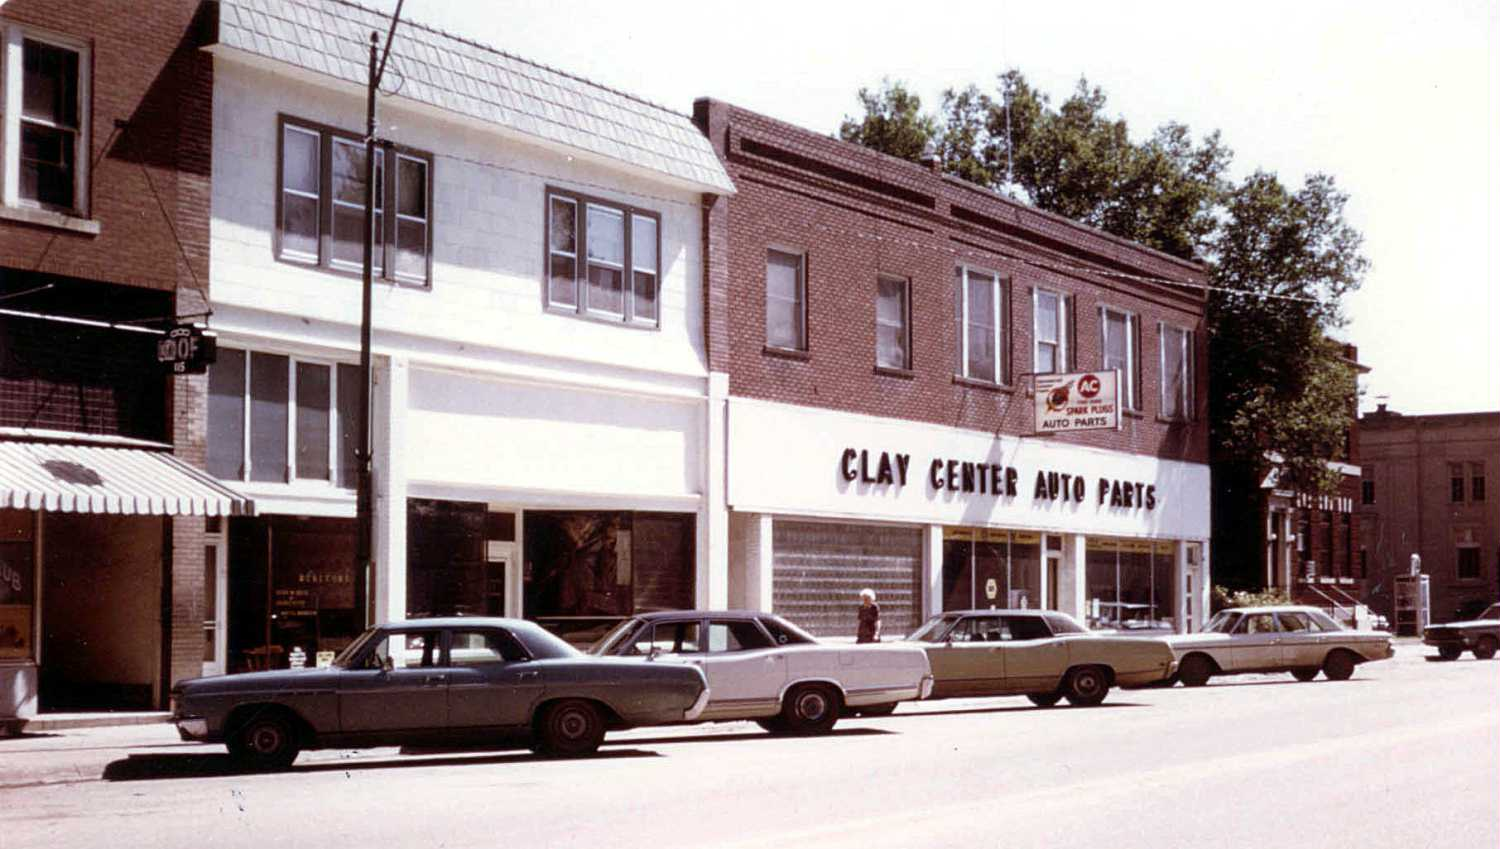 clay center dating Oldtrusty home video tour link to others vendor info old trusty drive to the water tower at the fairgrounds in clay center joomla templates: by.